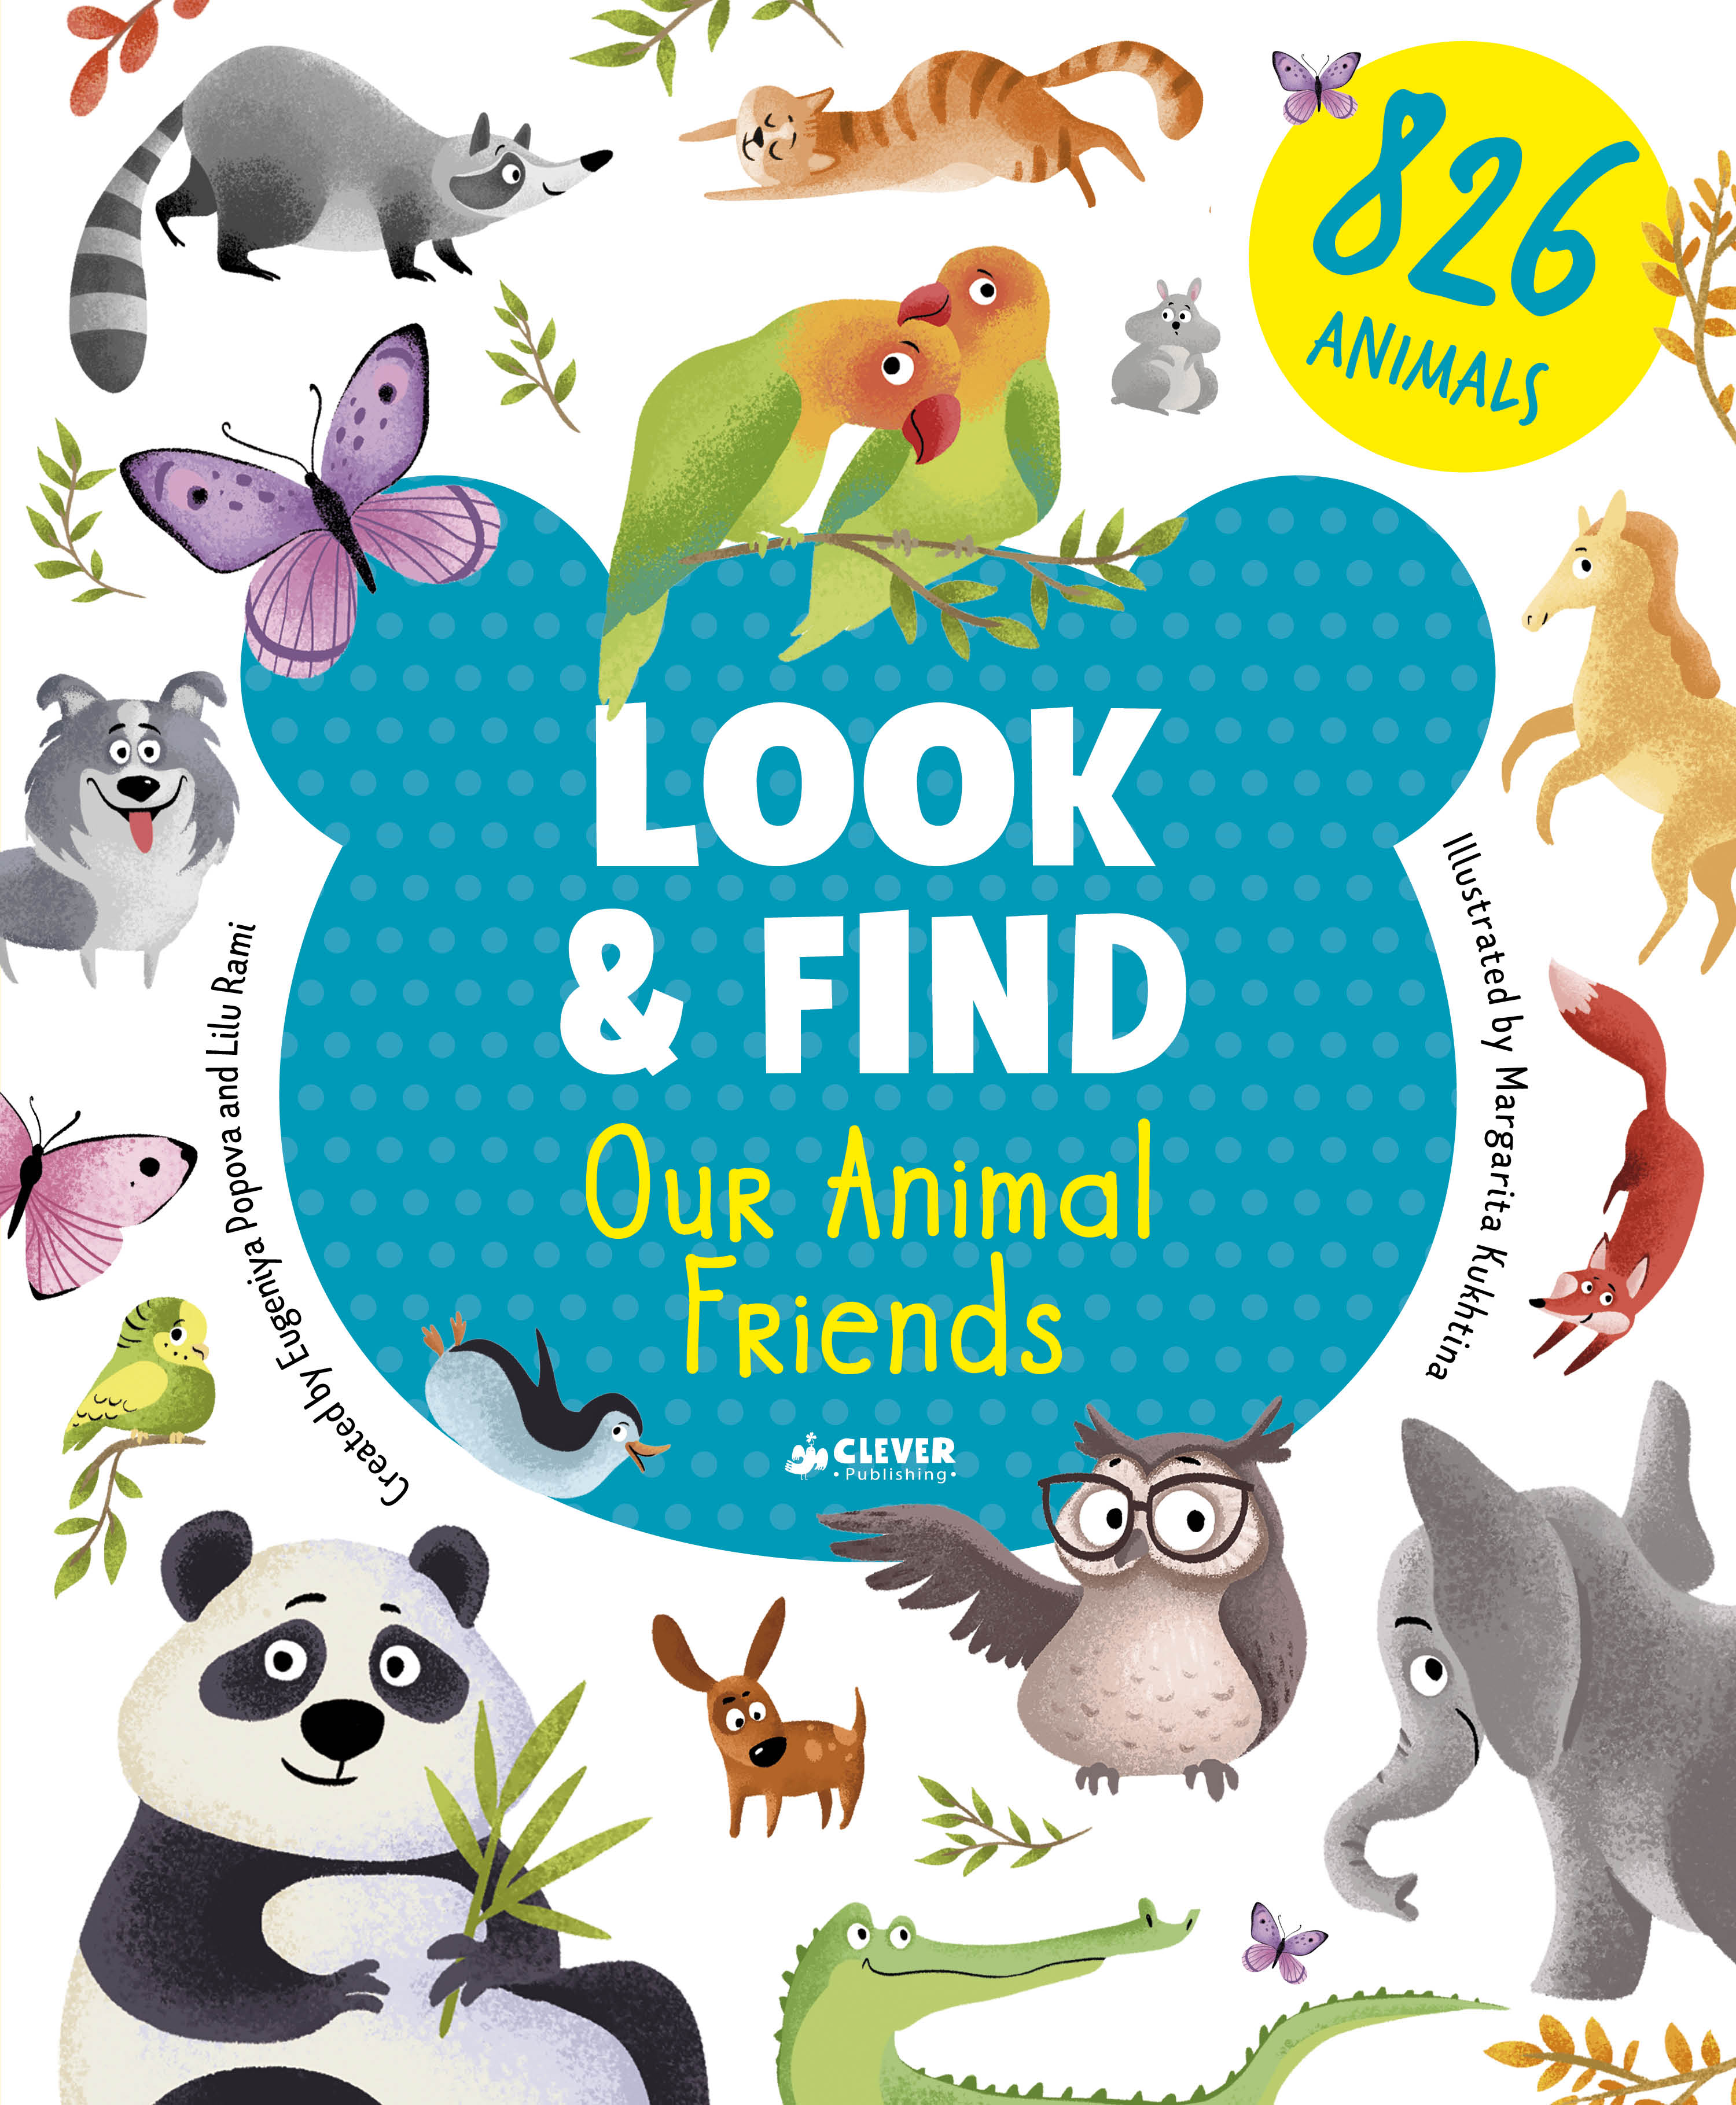 Our Animal Friends